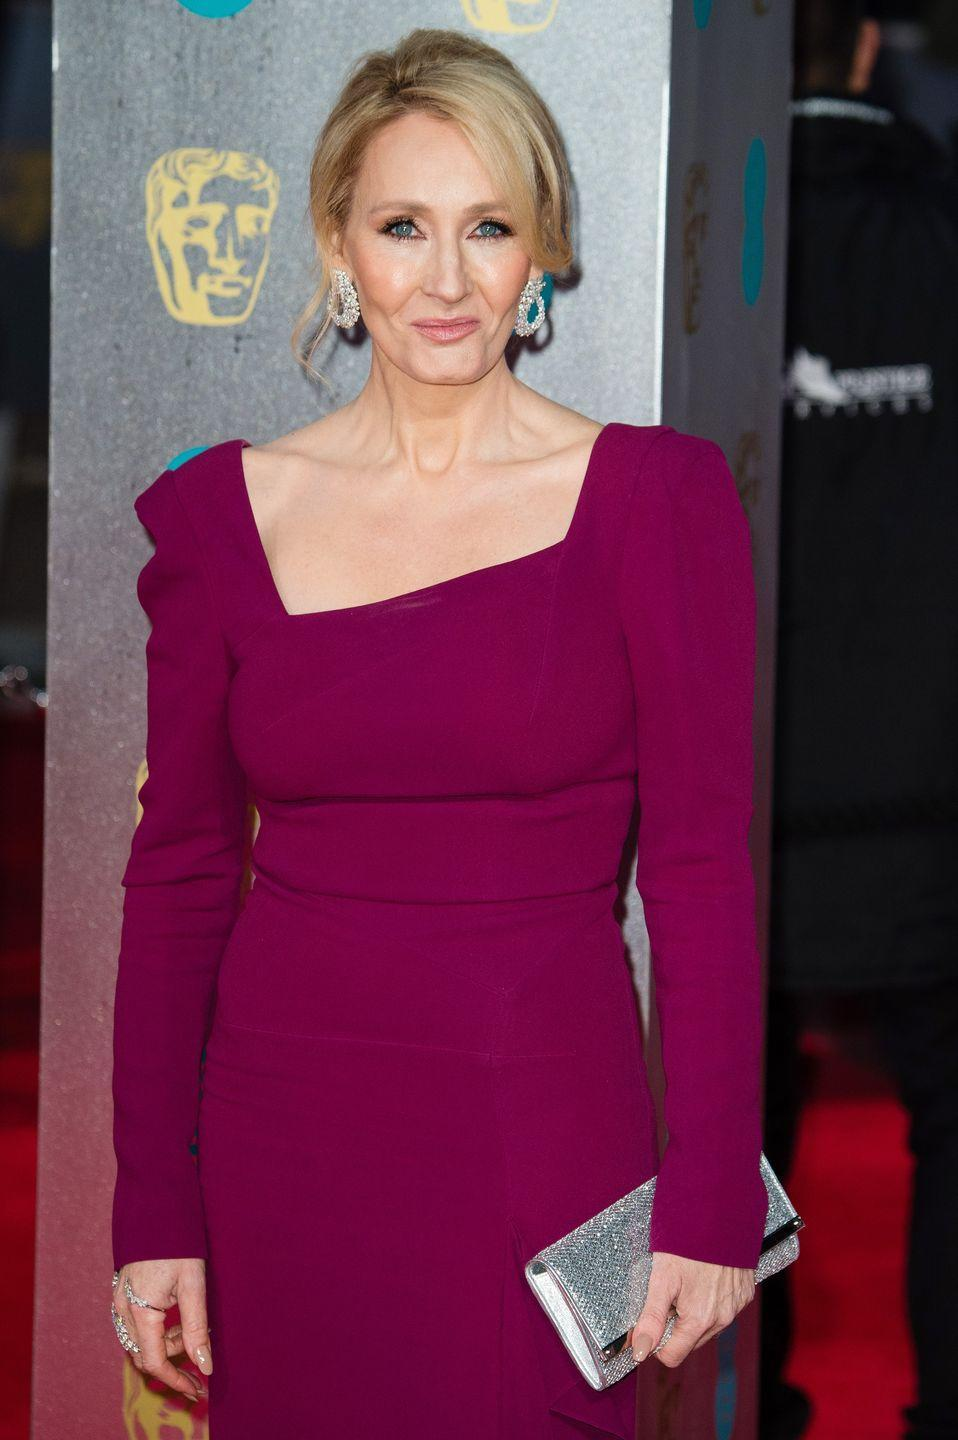 """<p>No one can take on the great JK Rowling and not end up regretting it later. The Harry Potter author had the last laugh after she shared a pic of herself with Serena Williams and a troll tweeted that Serena """"was built like man"""".</p><p>She <a href=""""https://twitter.com/jk_rowling/status/619886370081869824"""" rel=""""nofollow noopener"""" target=""""_blank"""" data-ylk=""""slk:tweeted"""" class=""""link rapid-noclick-resp"""">tweeted</a> a picture of the tennis champ wearing a figure-hugging red dress and looking hot as hell, and added the caption: """"She is built like a man"""". Yeah, my husband looks just like this in a dress. </p><p>""""You're an idiot.""""</p>"""